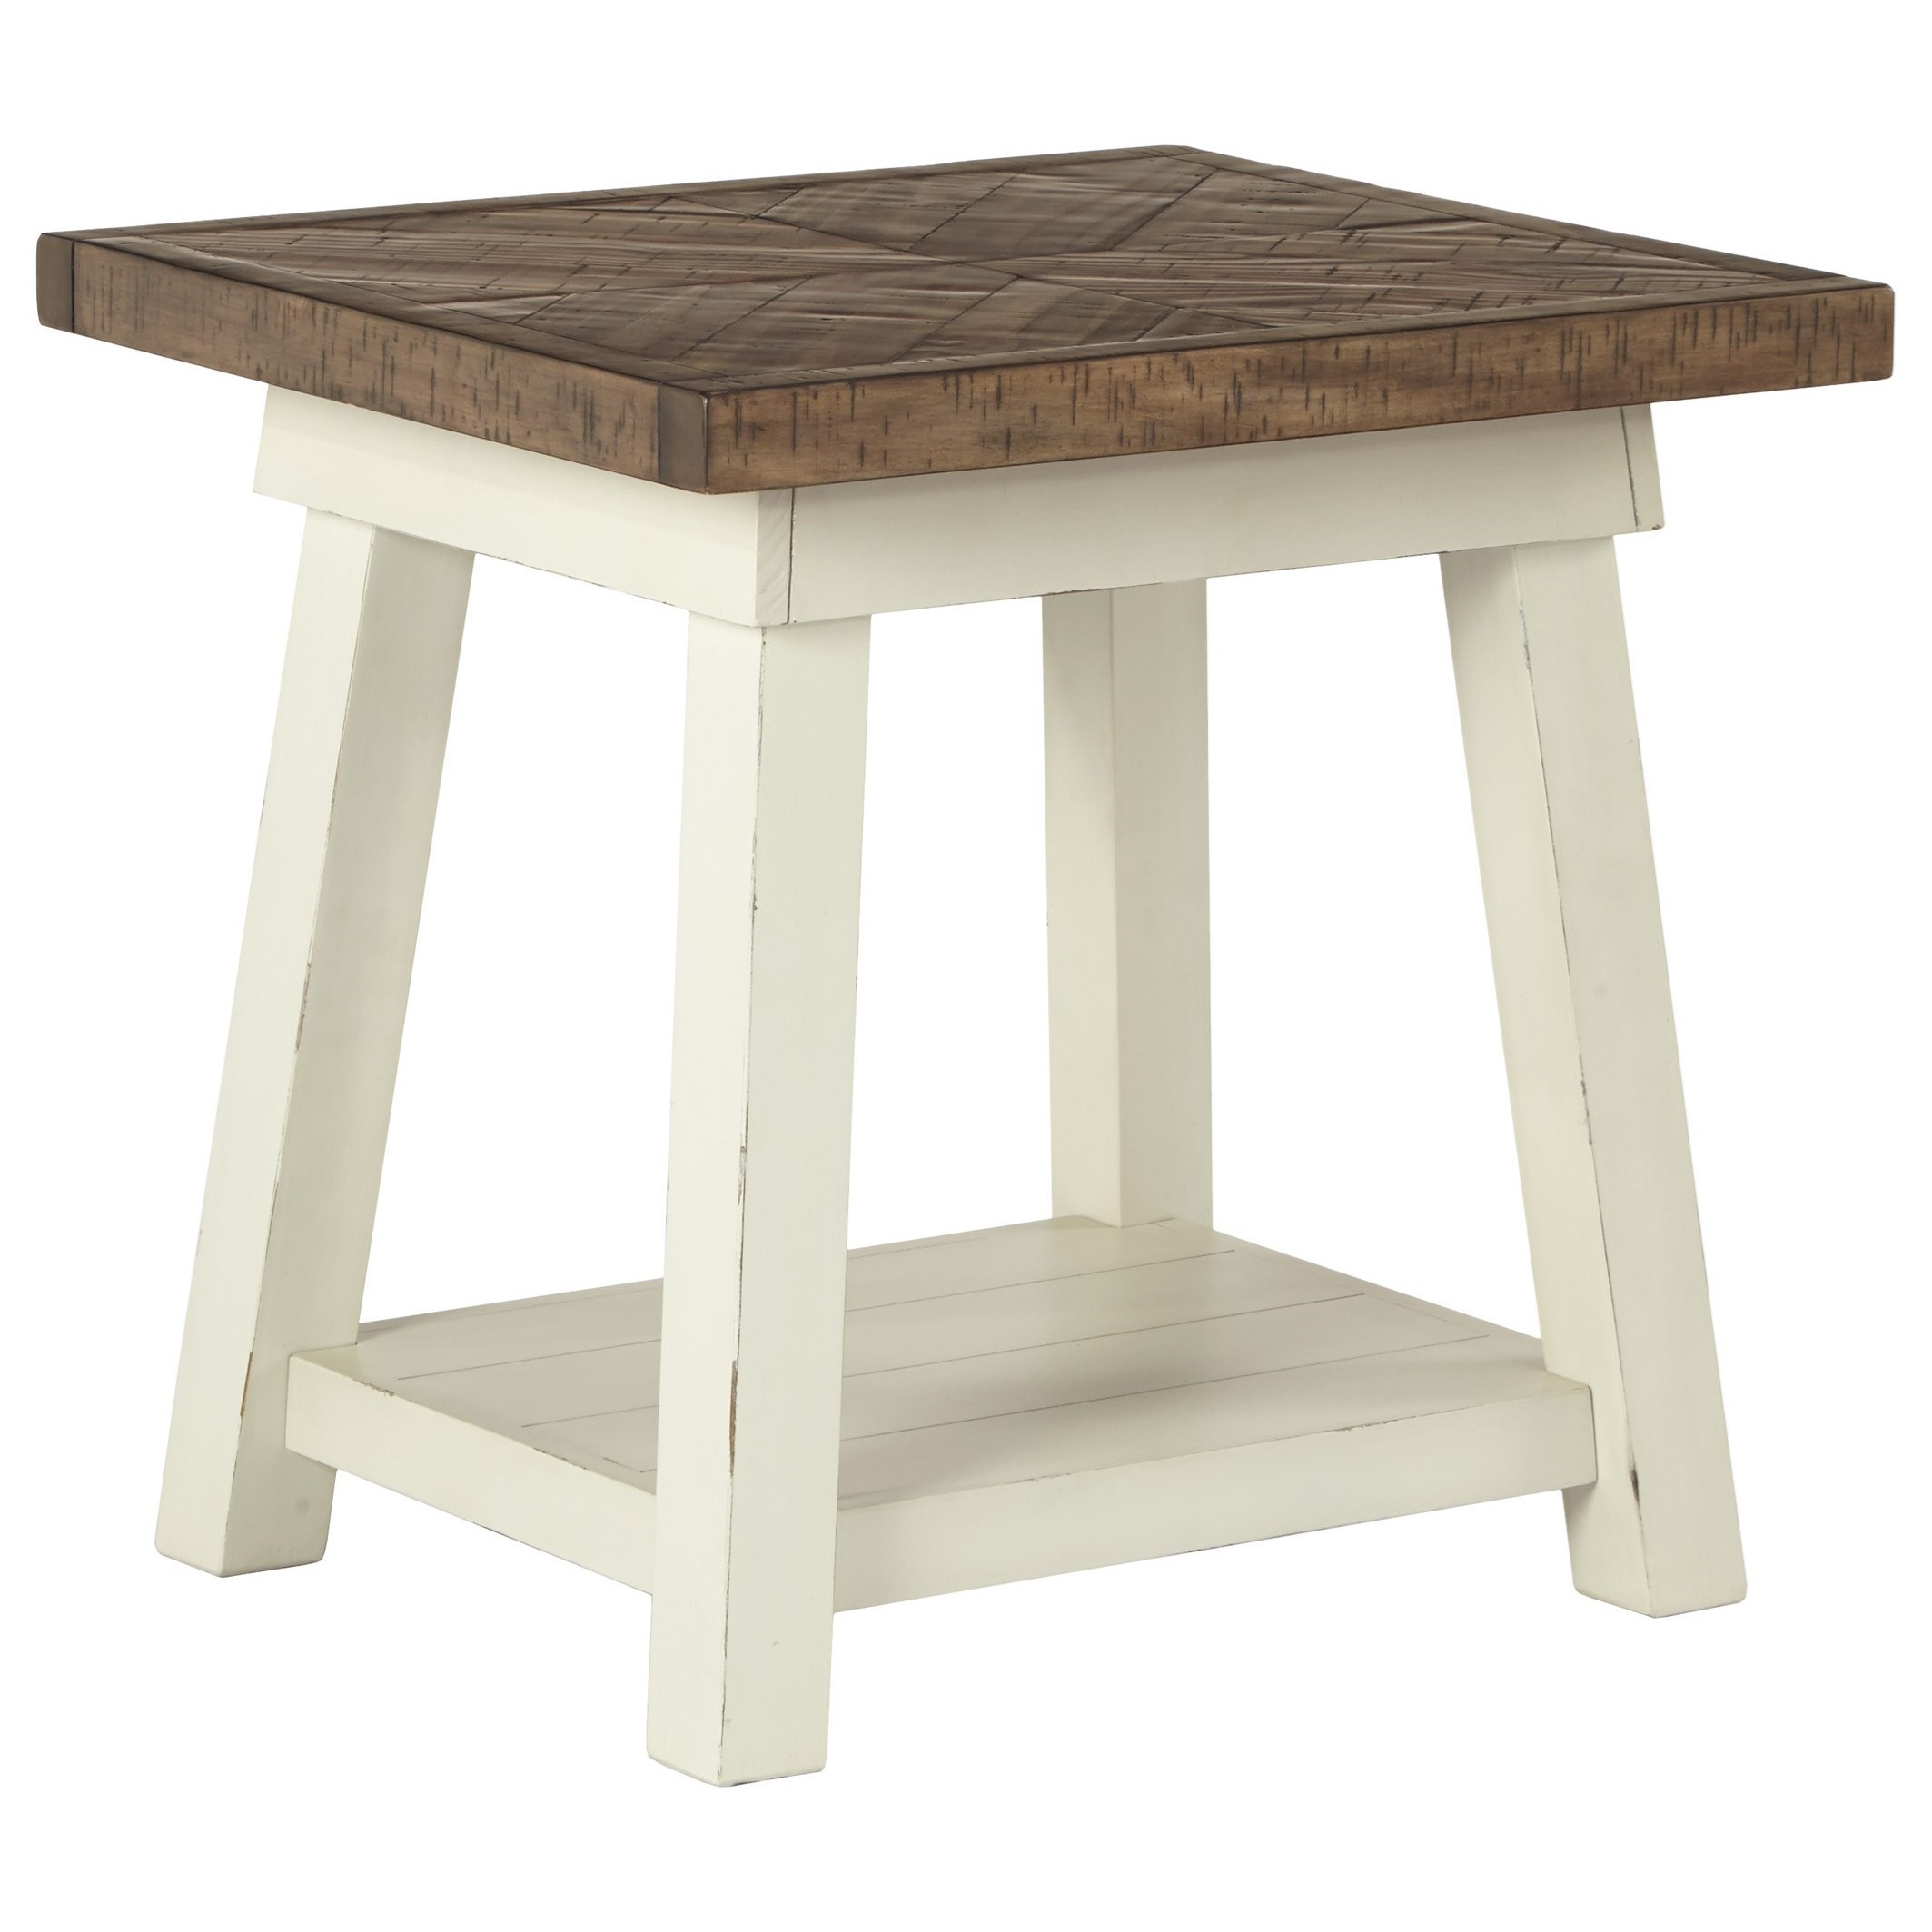 Ashley signature design stownbranner t640 3 two tone for Bright colored side tables